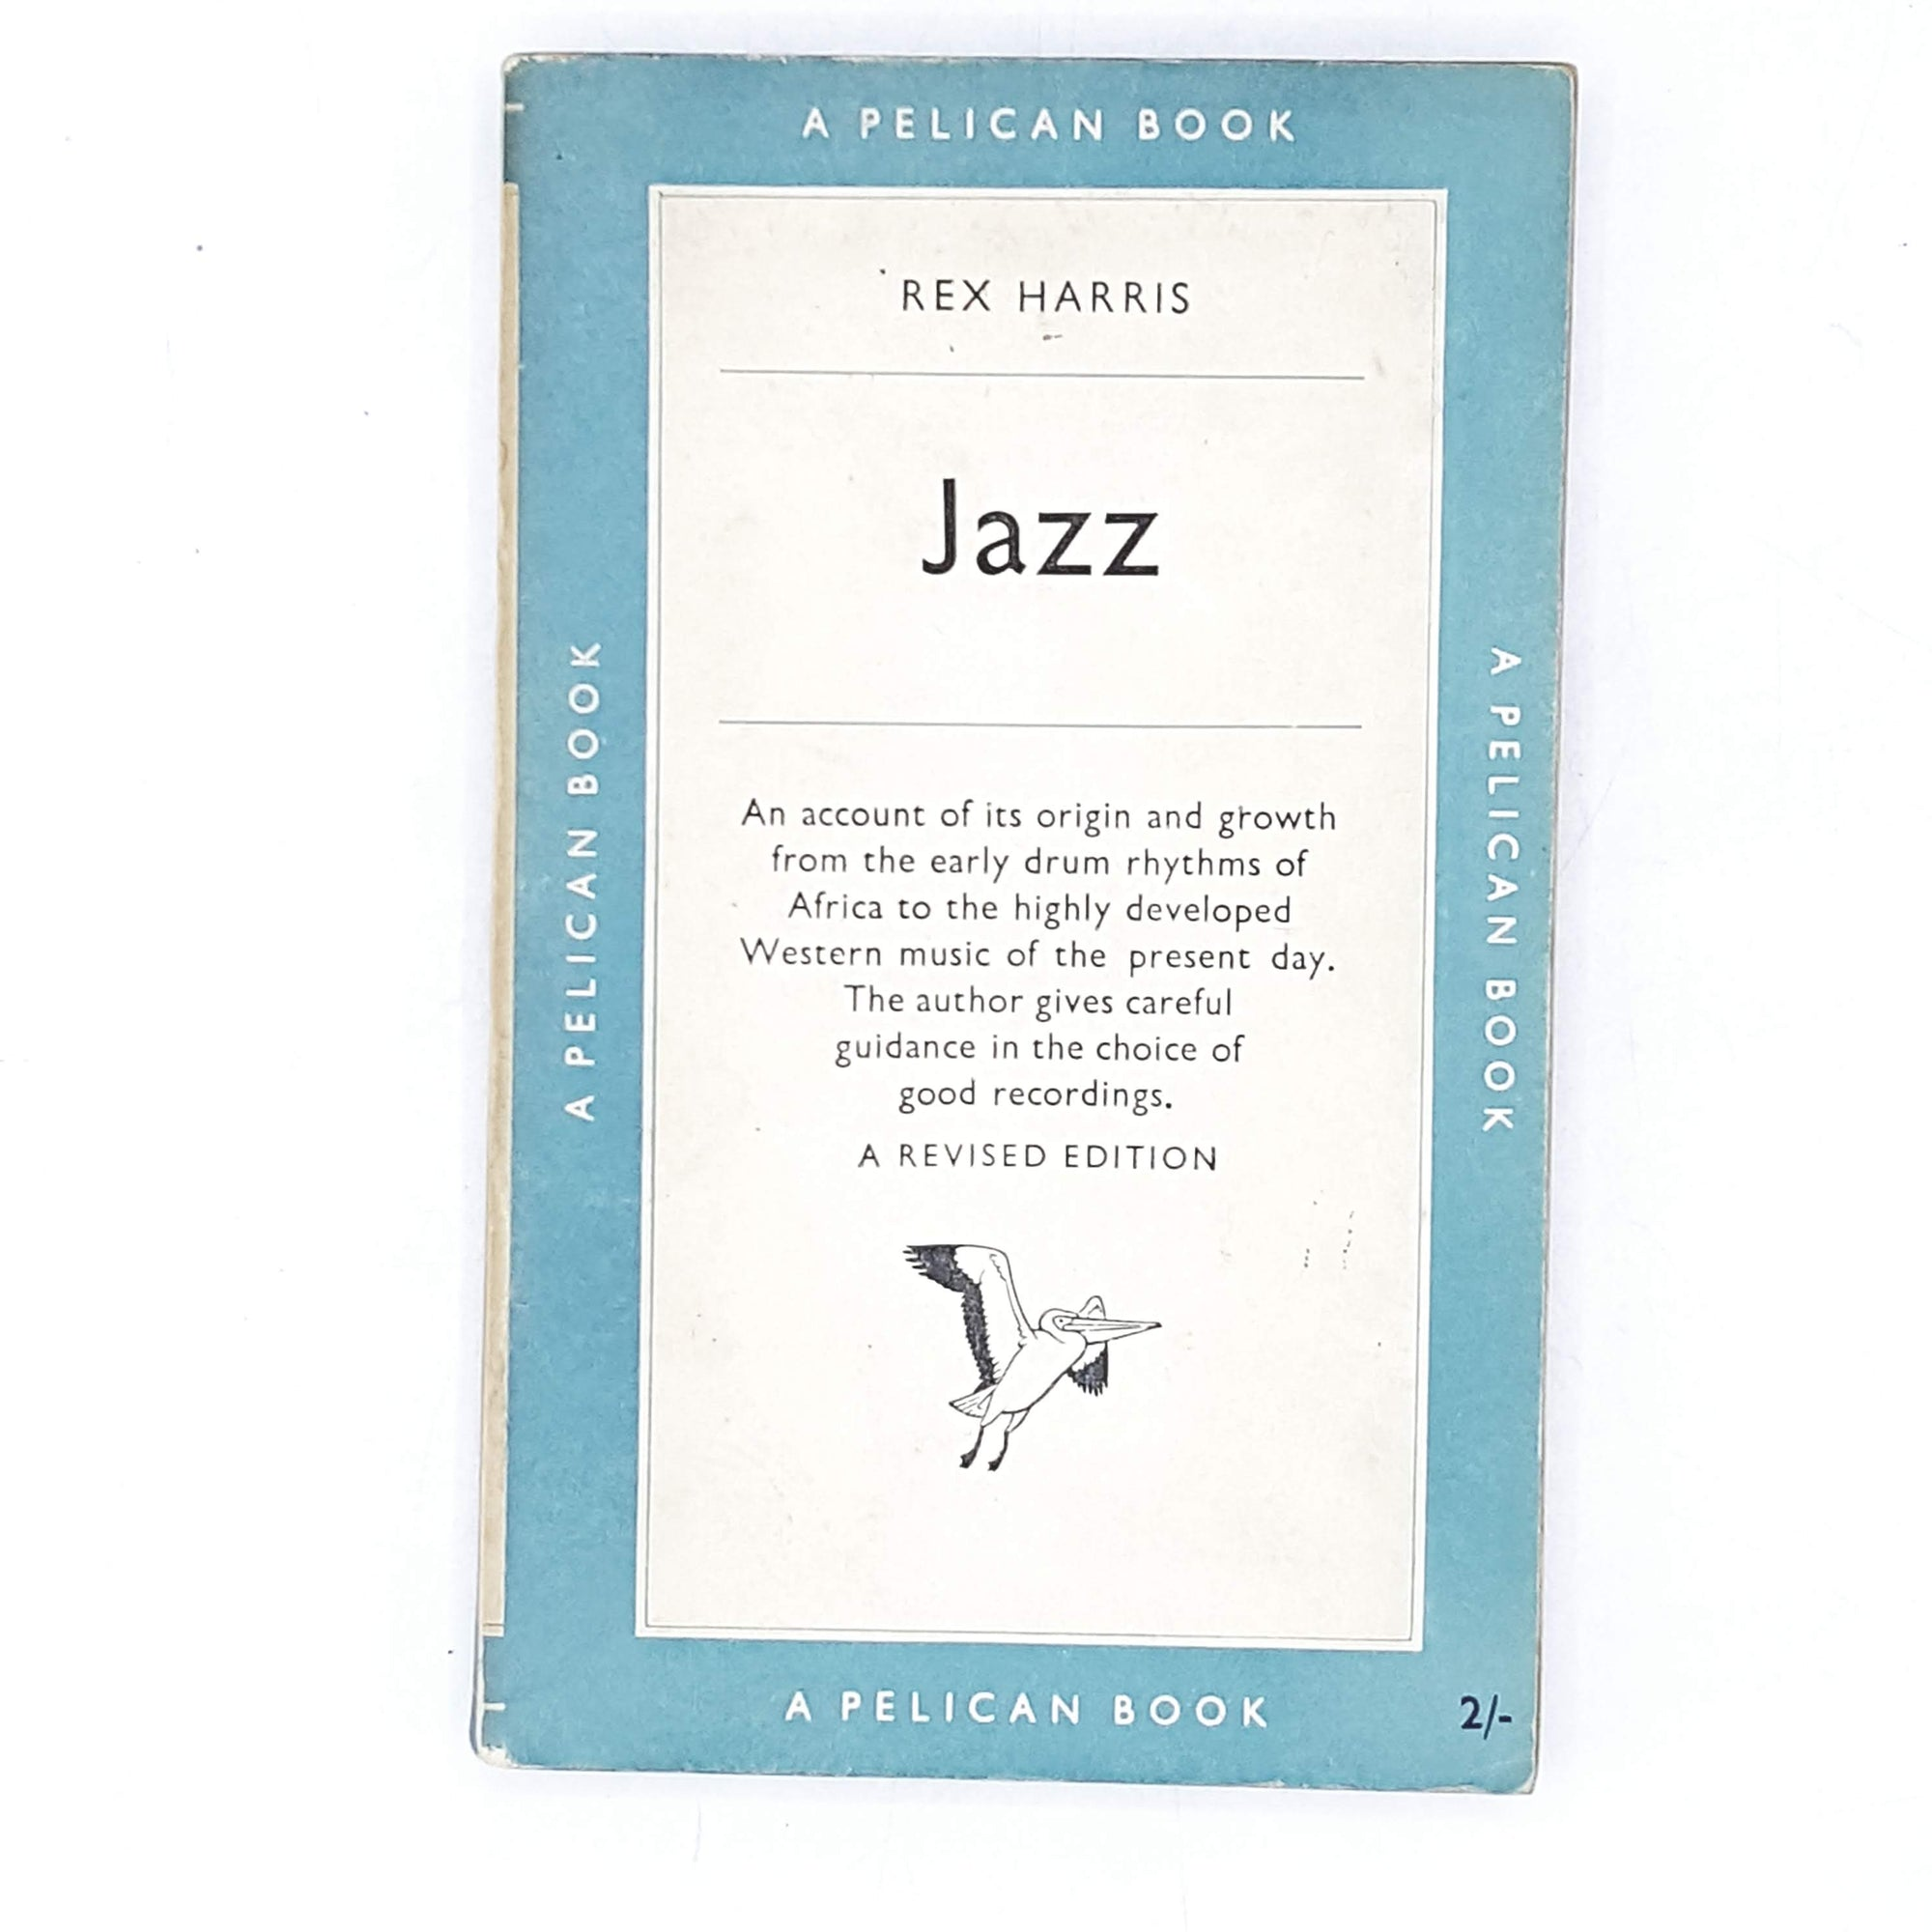 vintage-pelican-jazz-by-rex-harris-1953-pale-blue-country-house-library